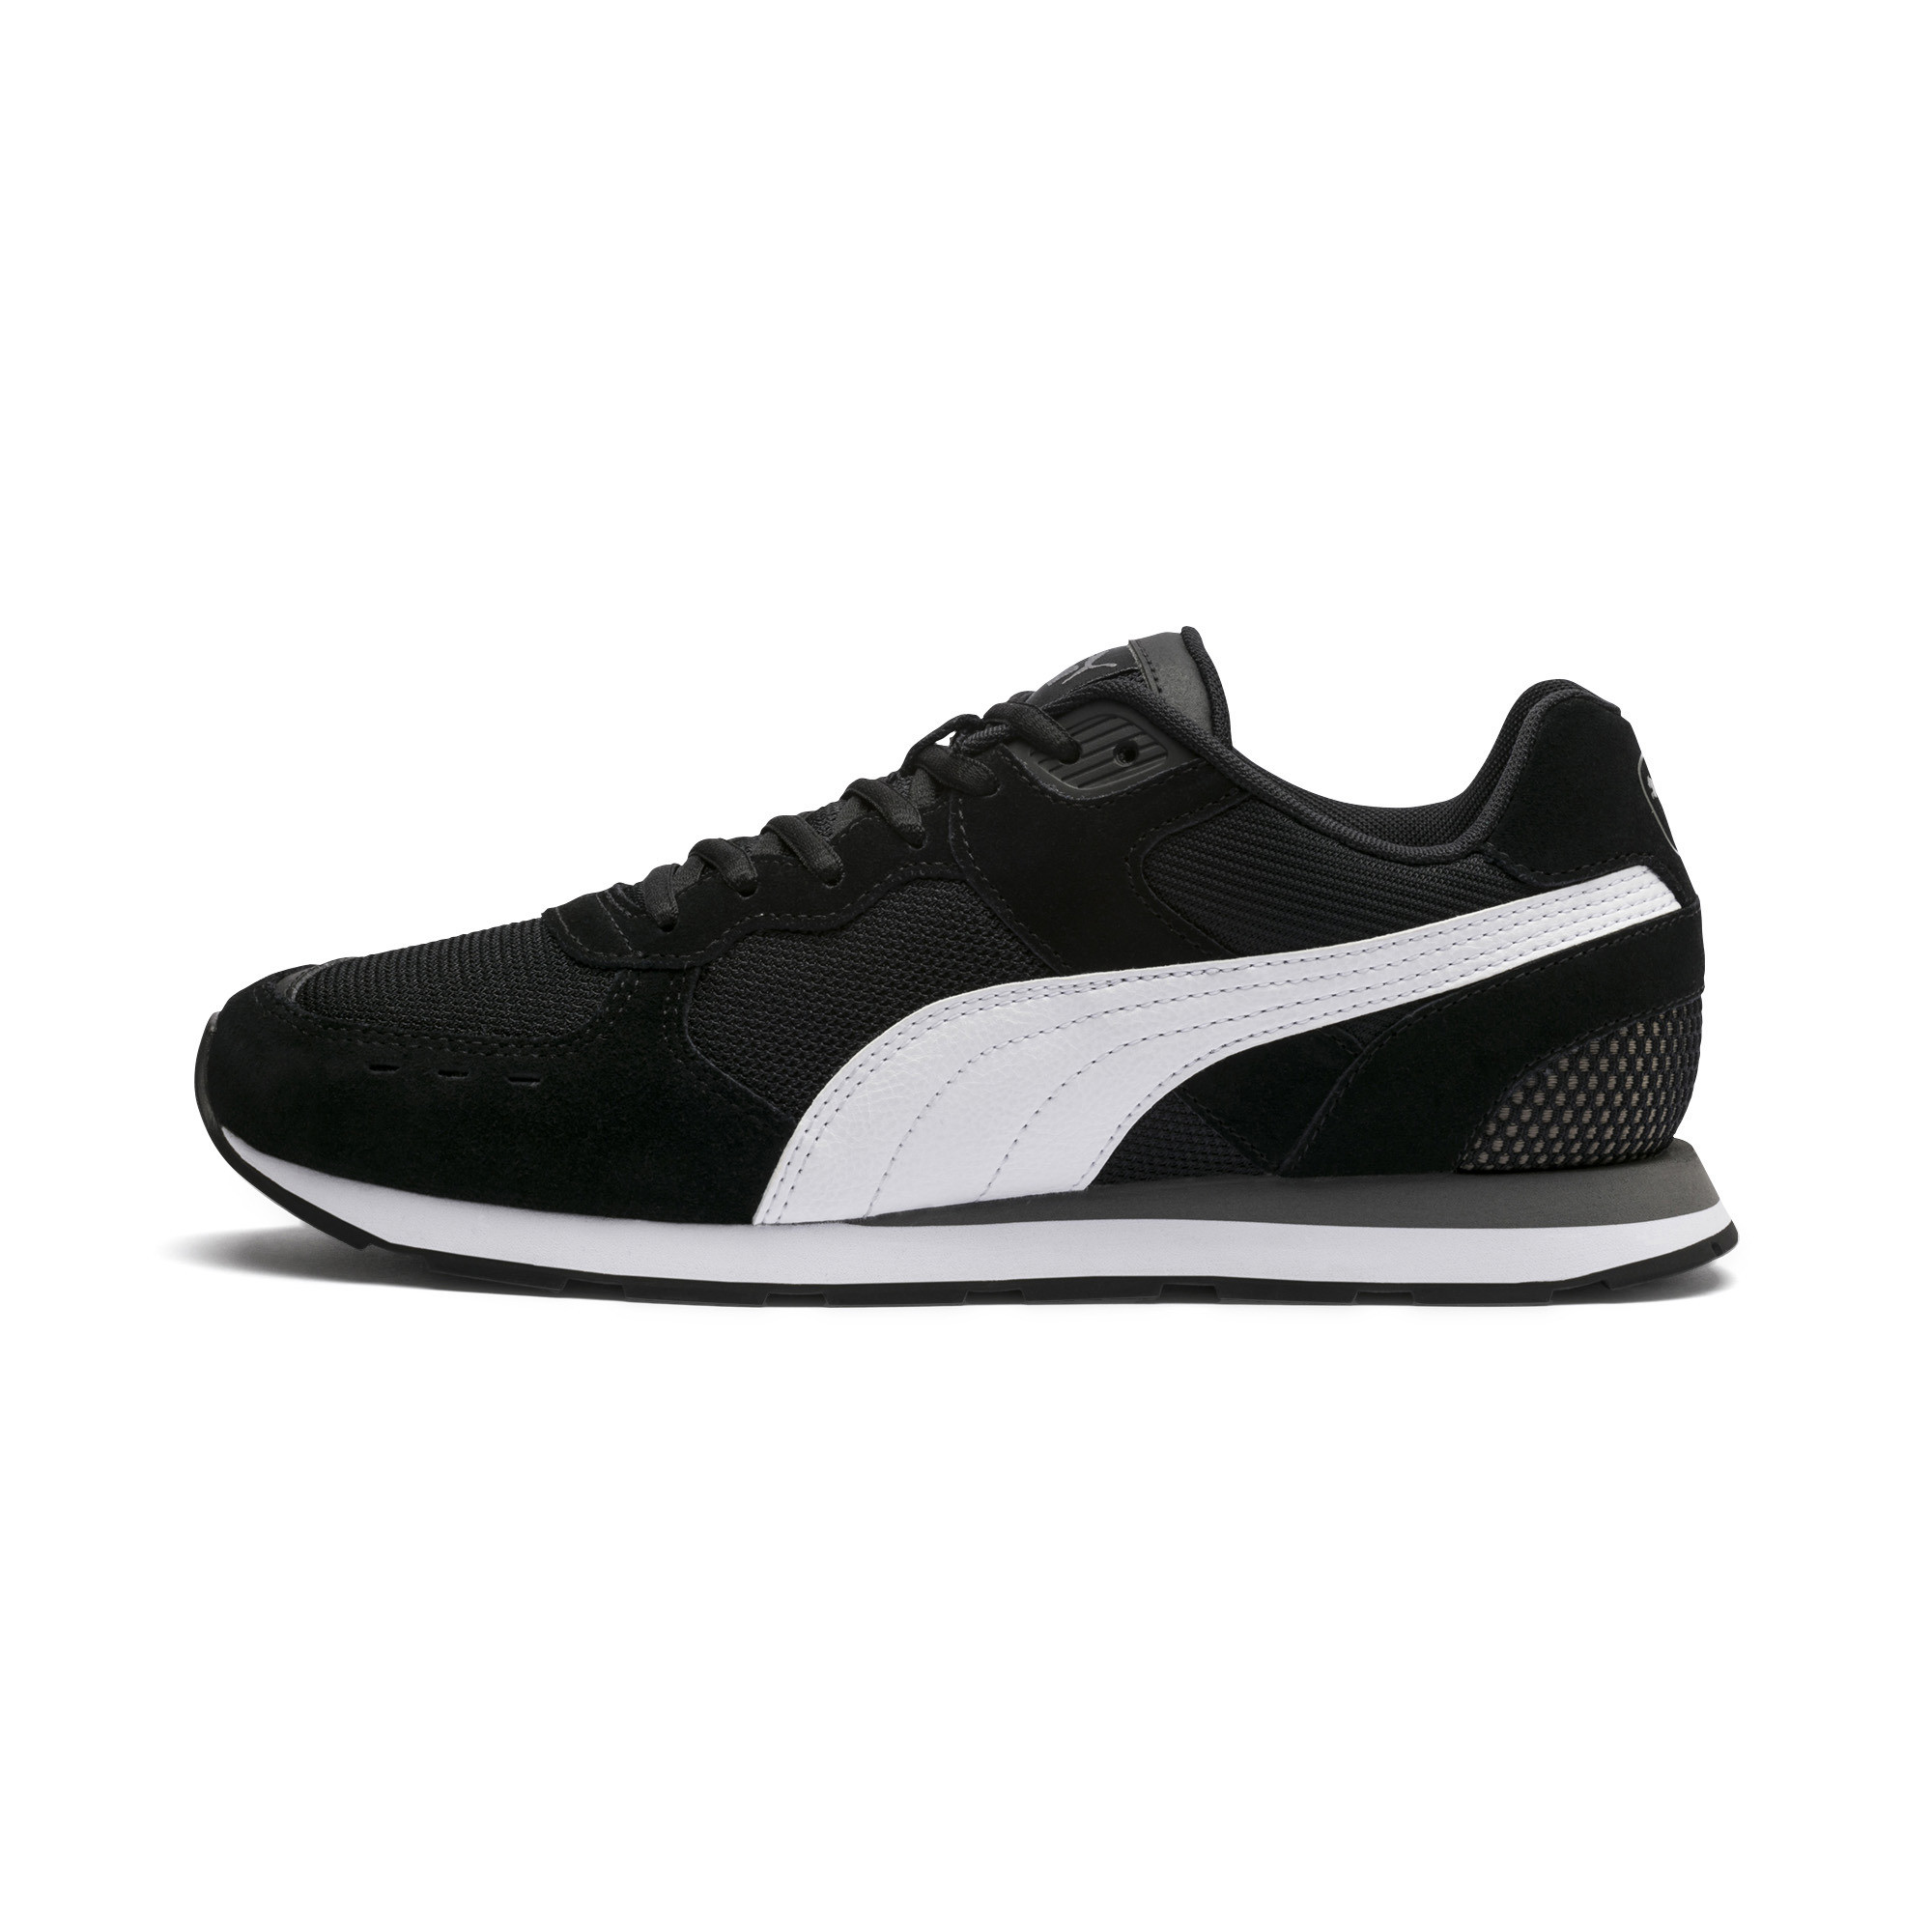 PUMA-Men-039-s-Vista-Sneakers thumbnail 17